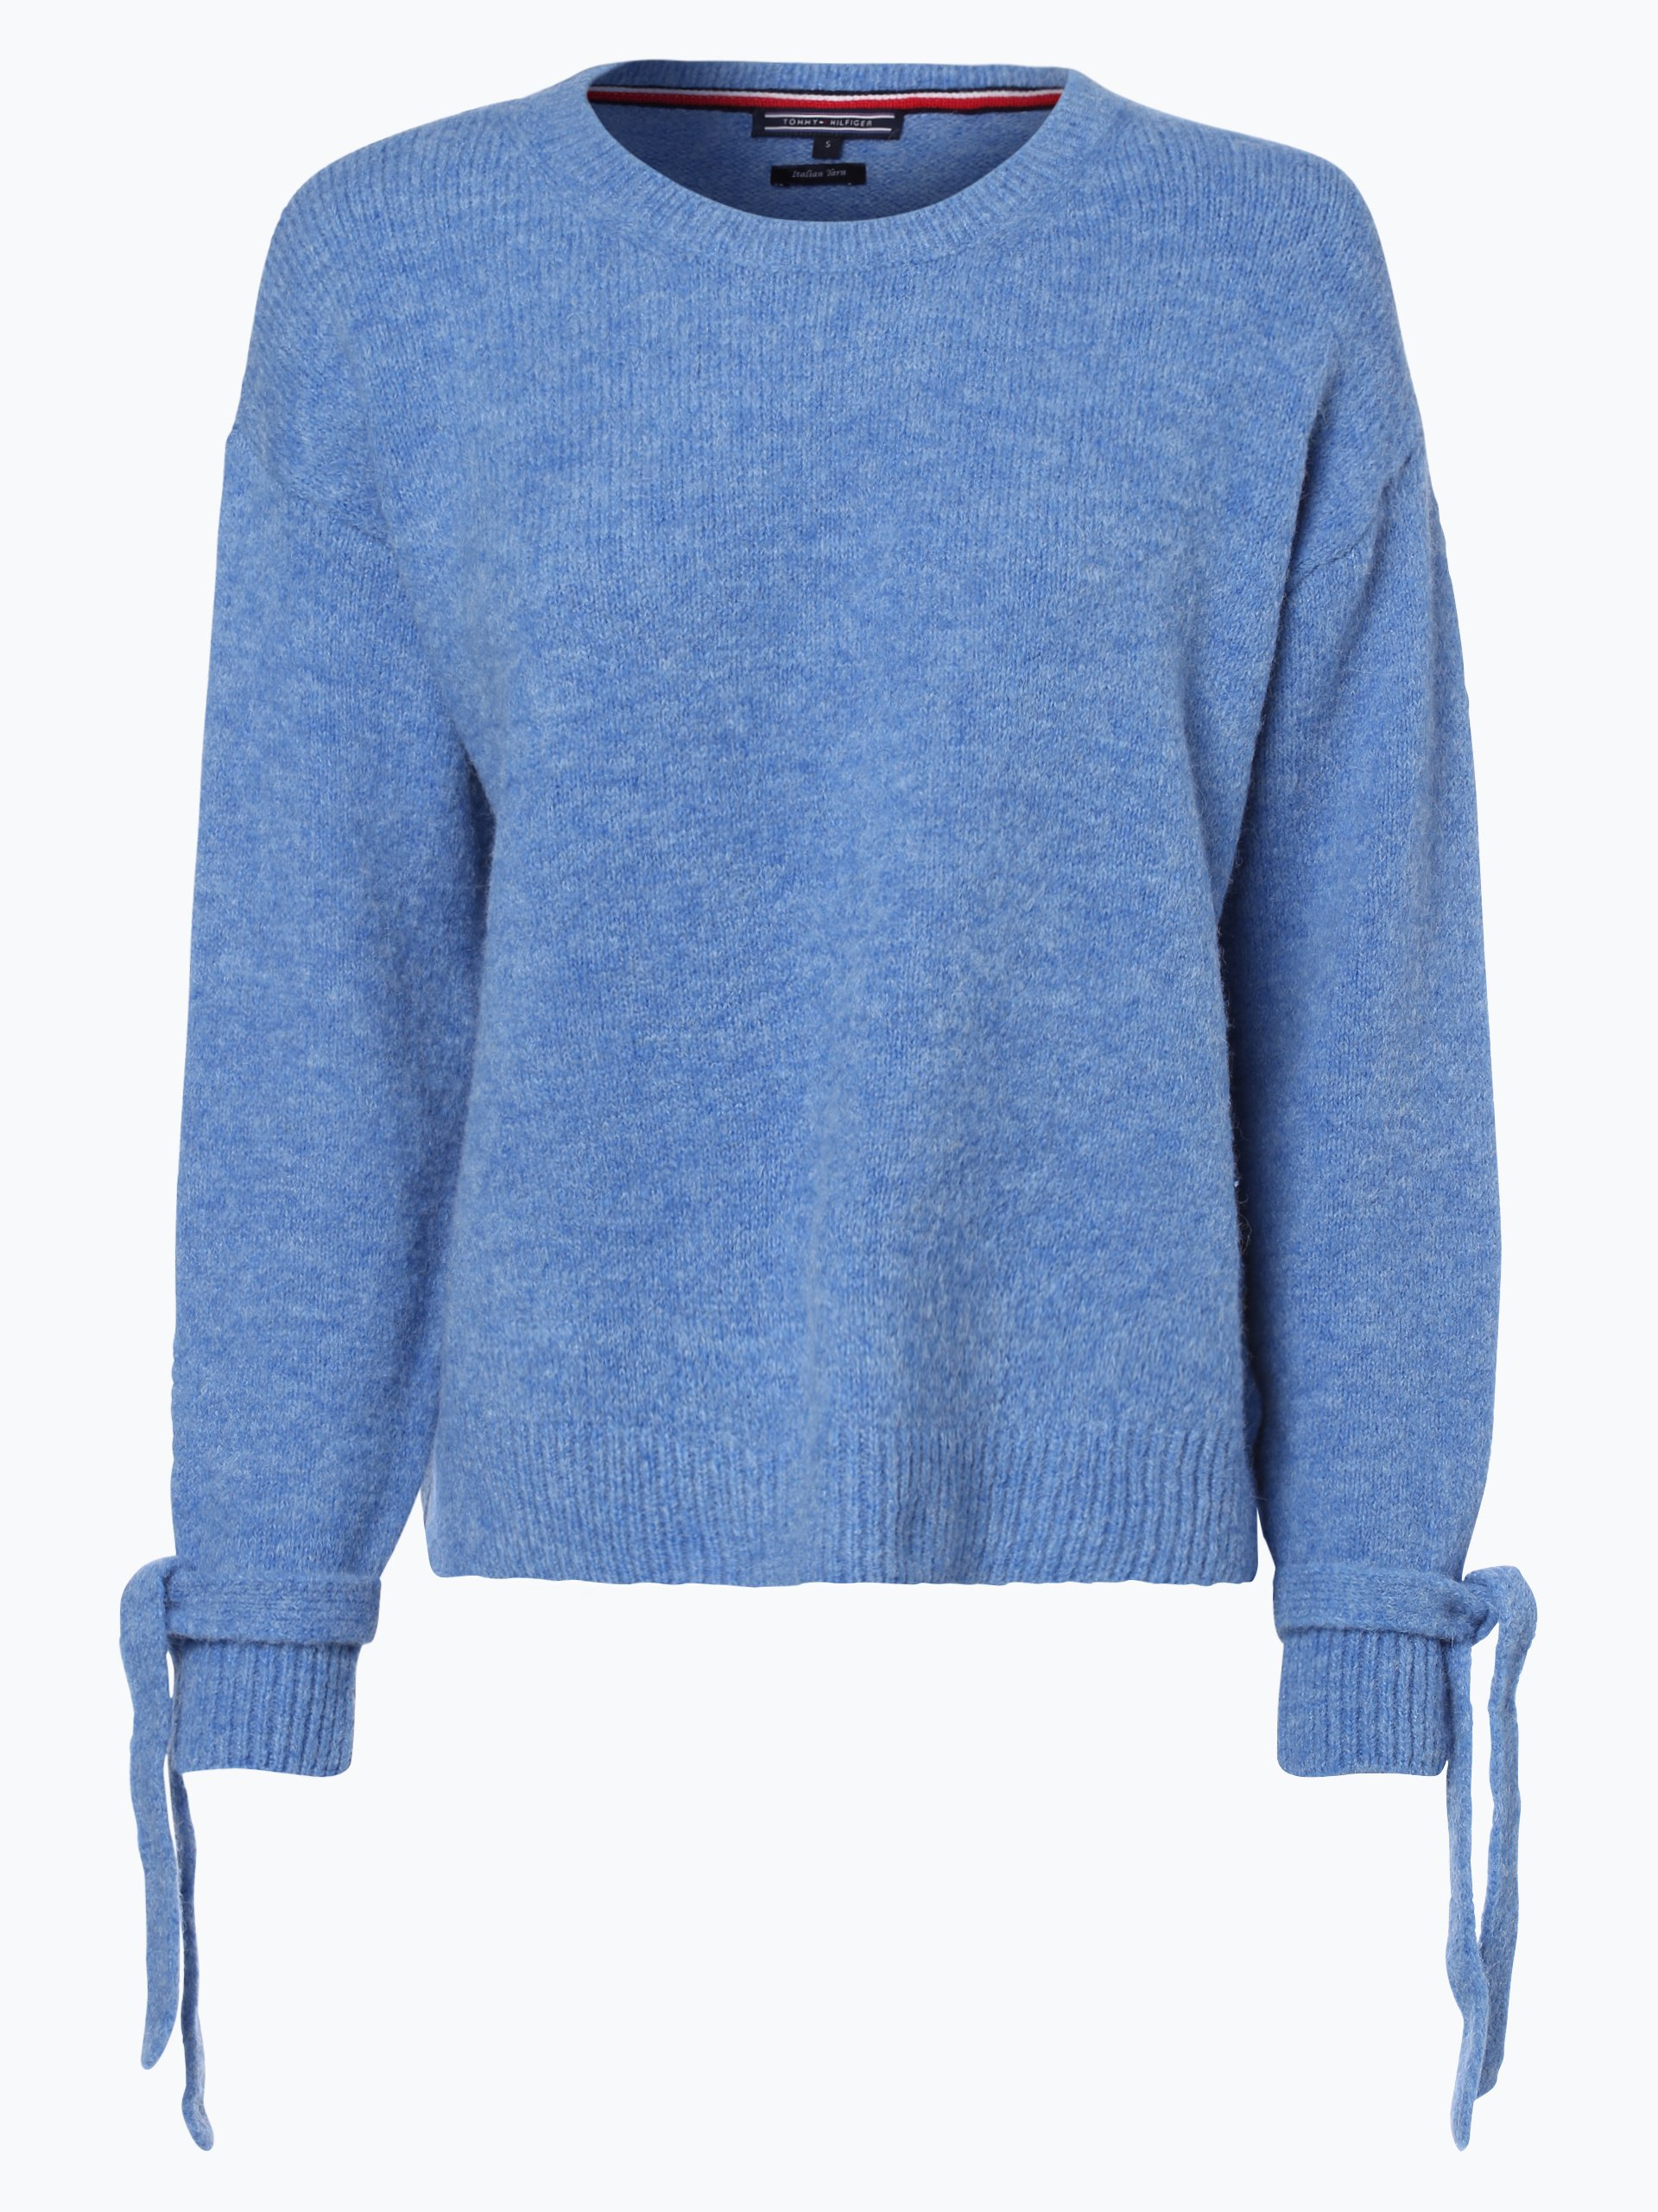 tommy hilfiger damen pullover mit alpaka anteil blau uni online kaufen vangraaf com. Black Bedroom Furniture Sets. Home Design Ideas